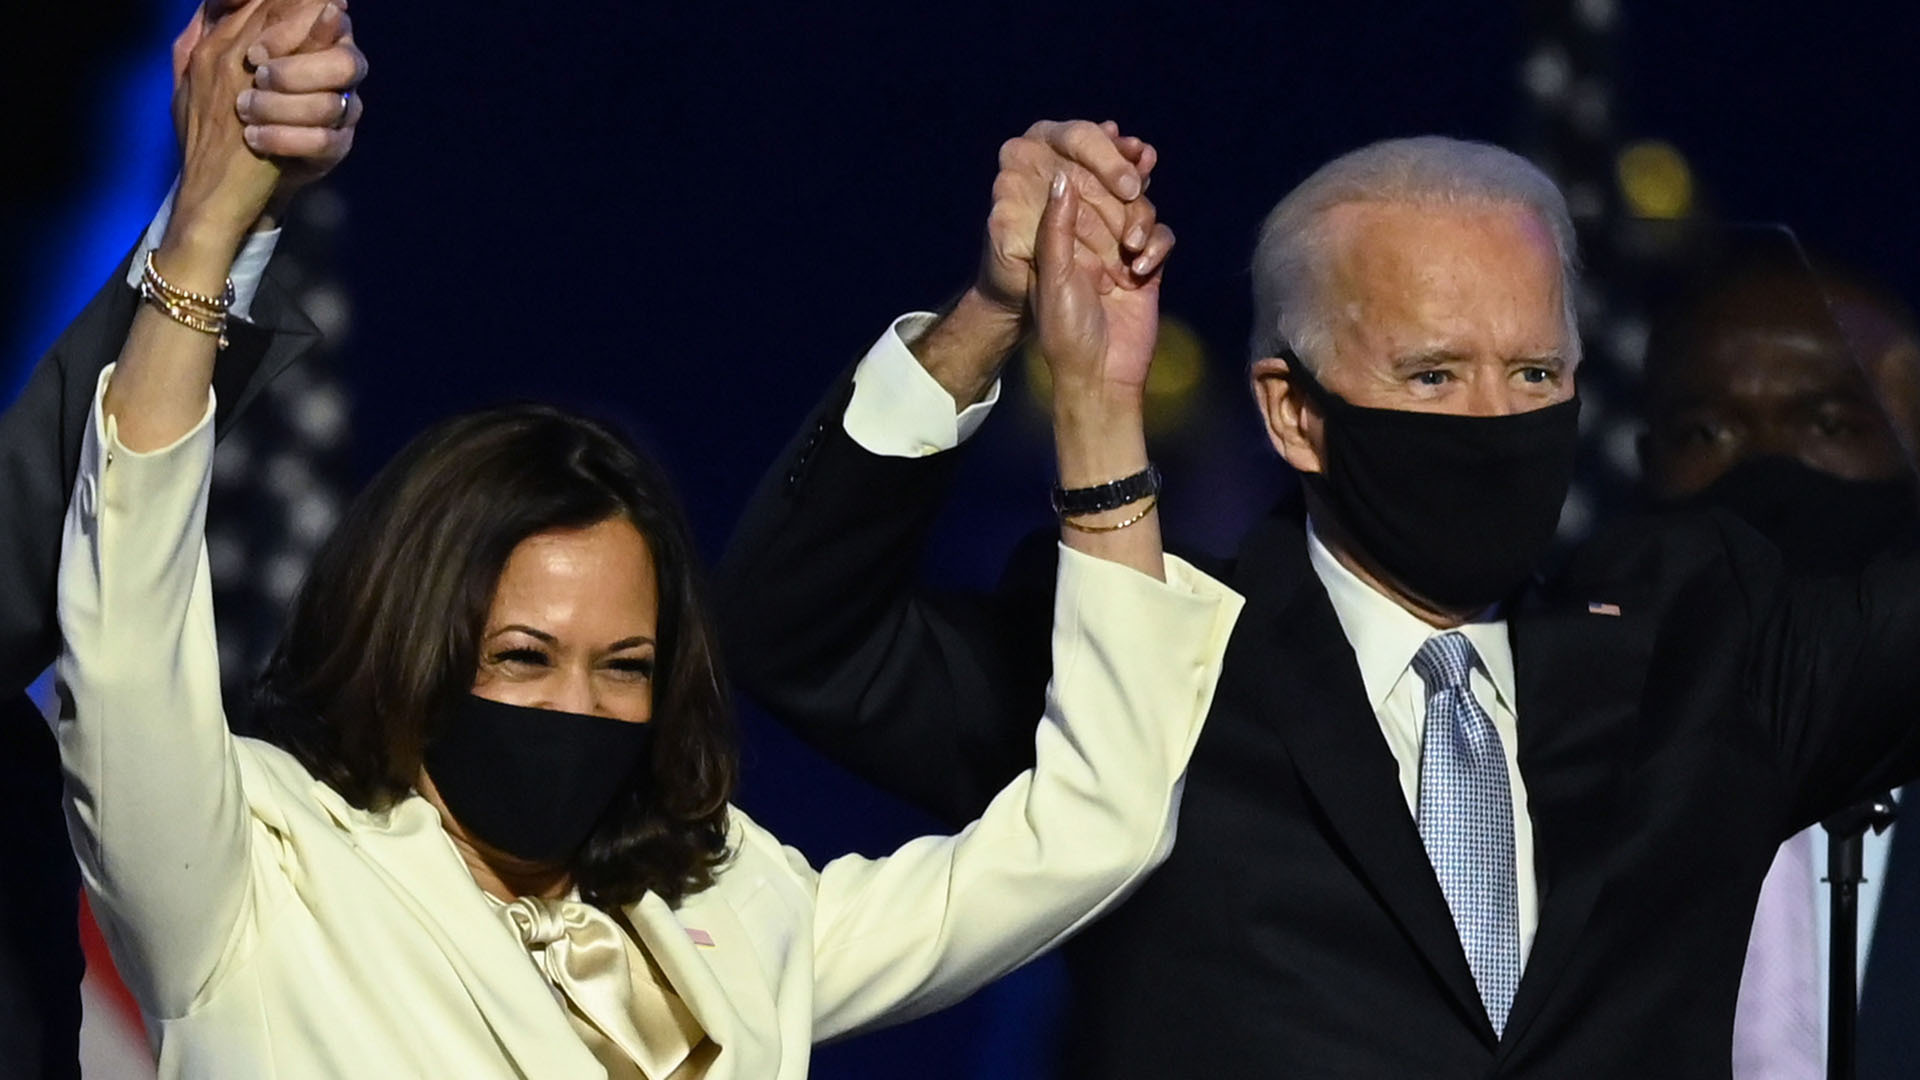 Biden and Harris named Time Magazine's 'Person of The Year' for 2020